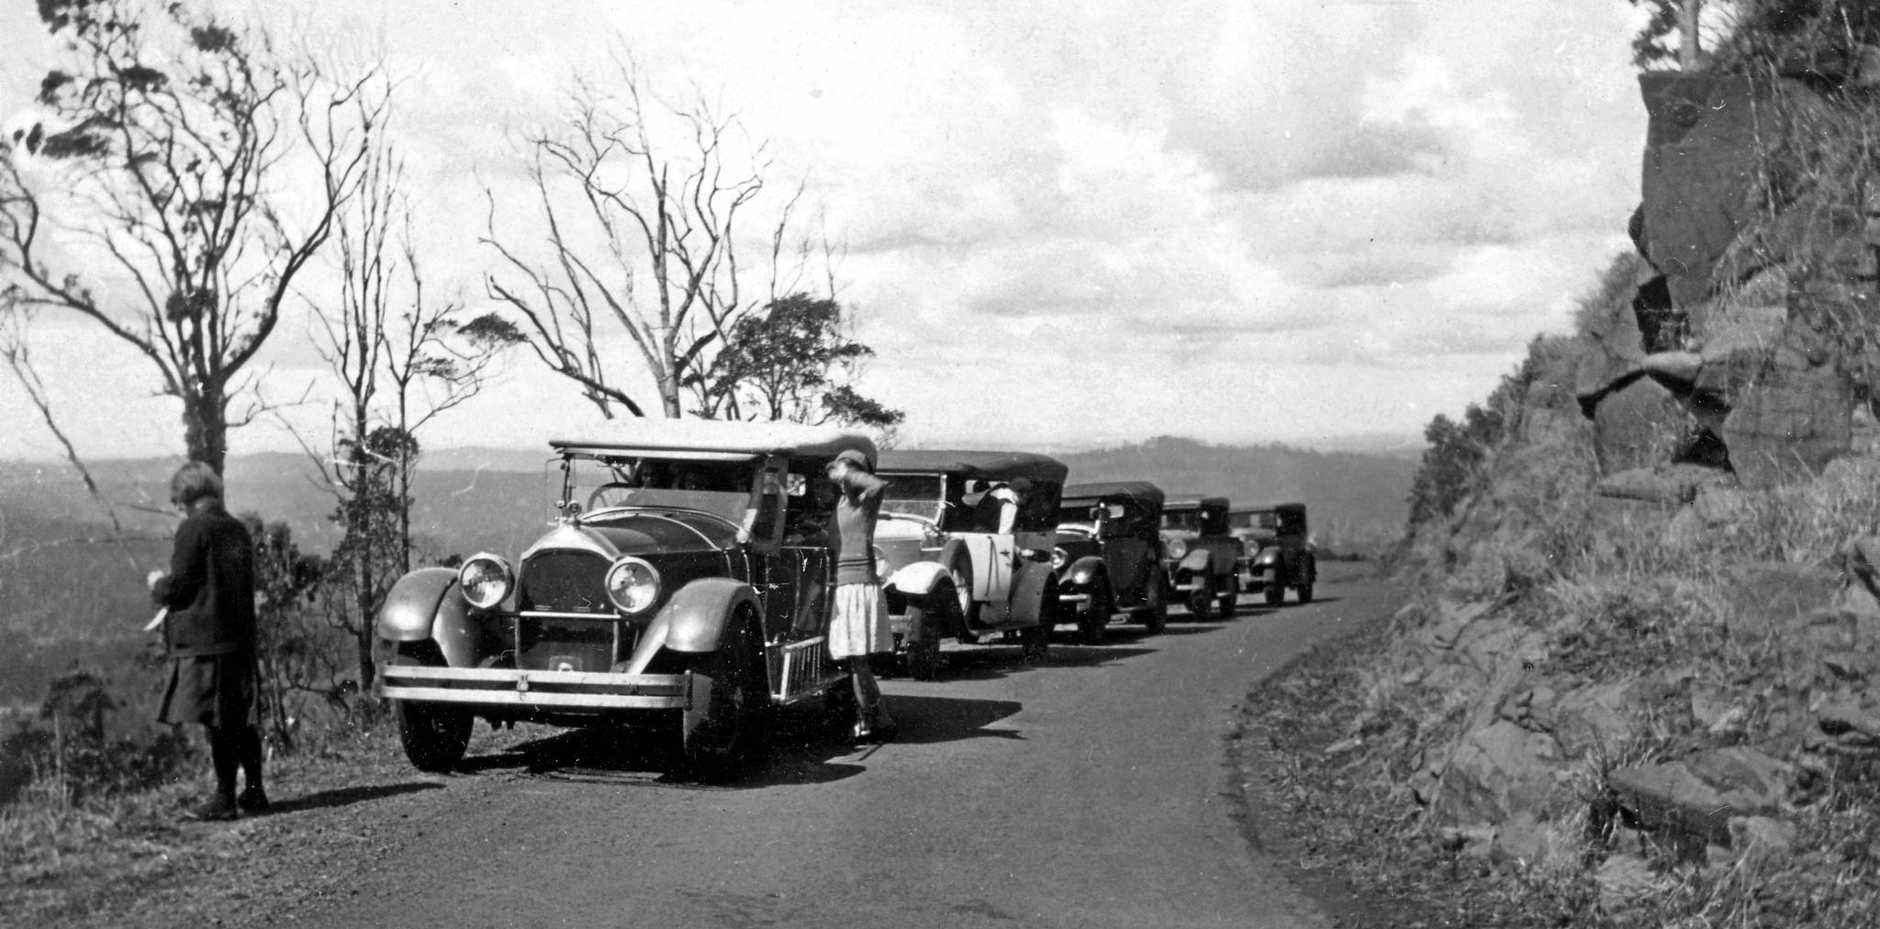 Travel could be hard work for our early pioneers but was easier by 1930, when this picture was taken on Montville Rd.